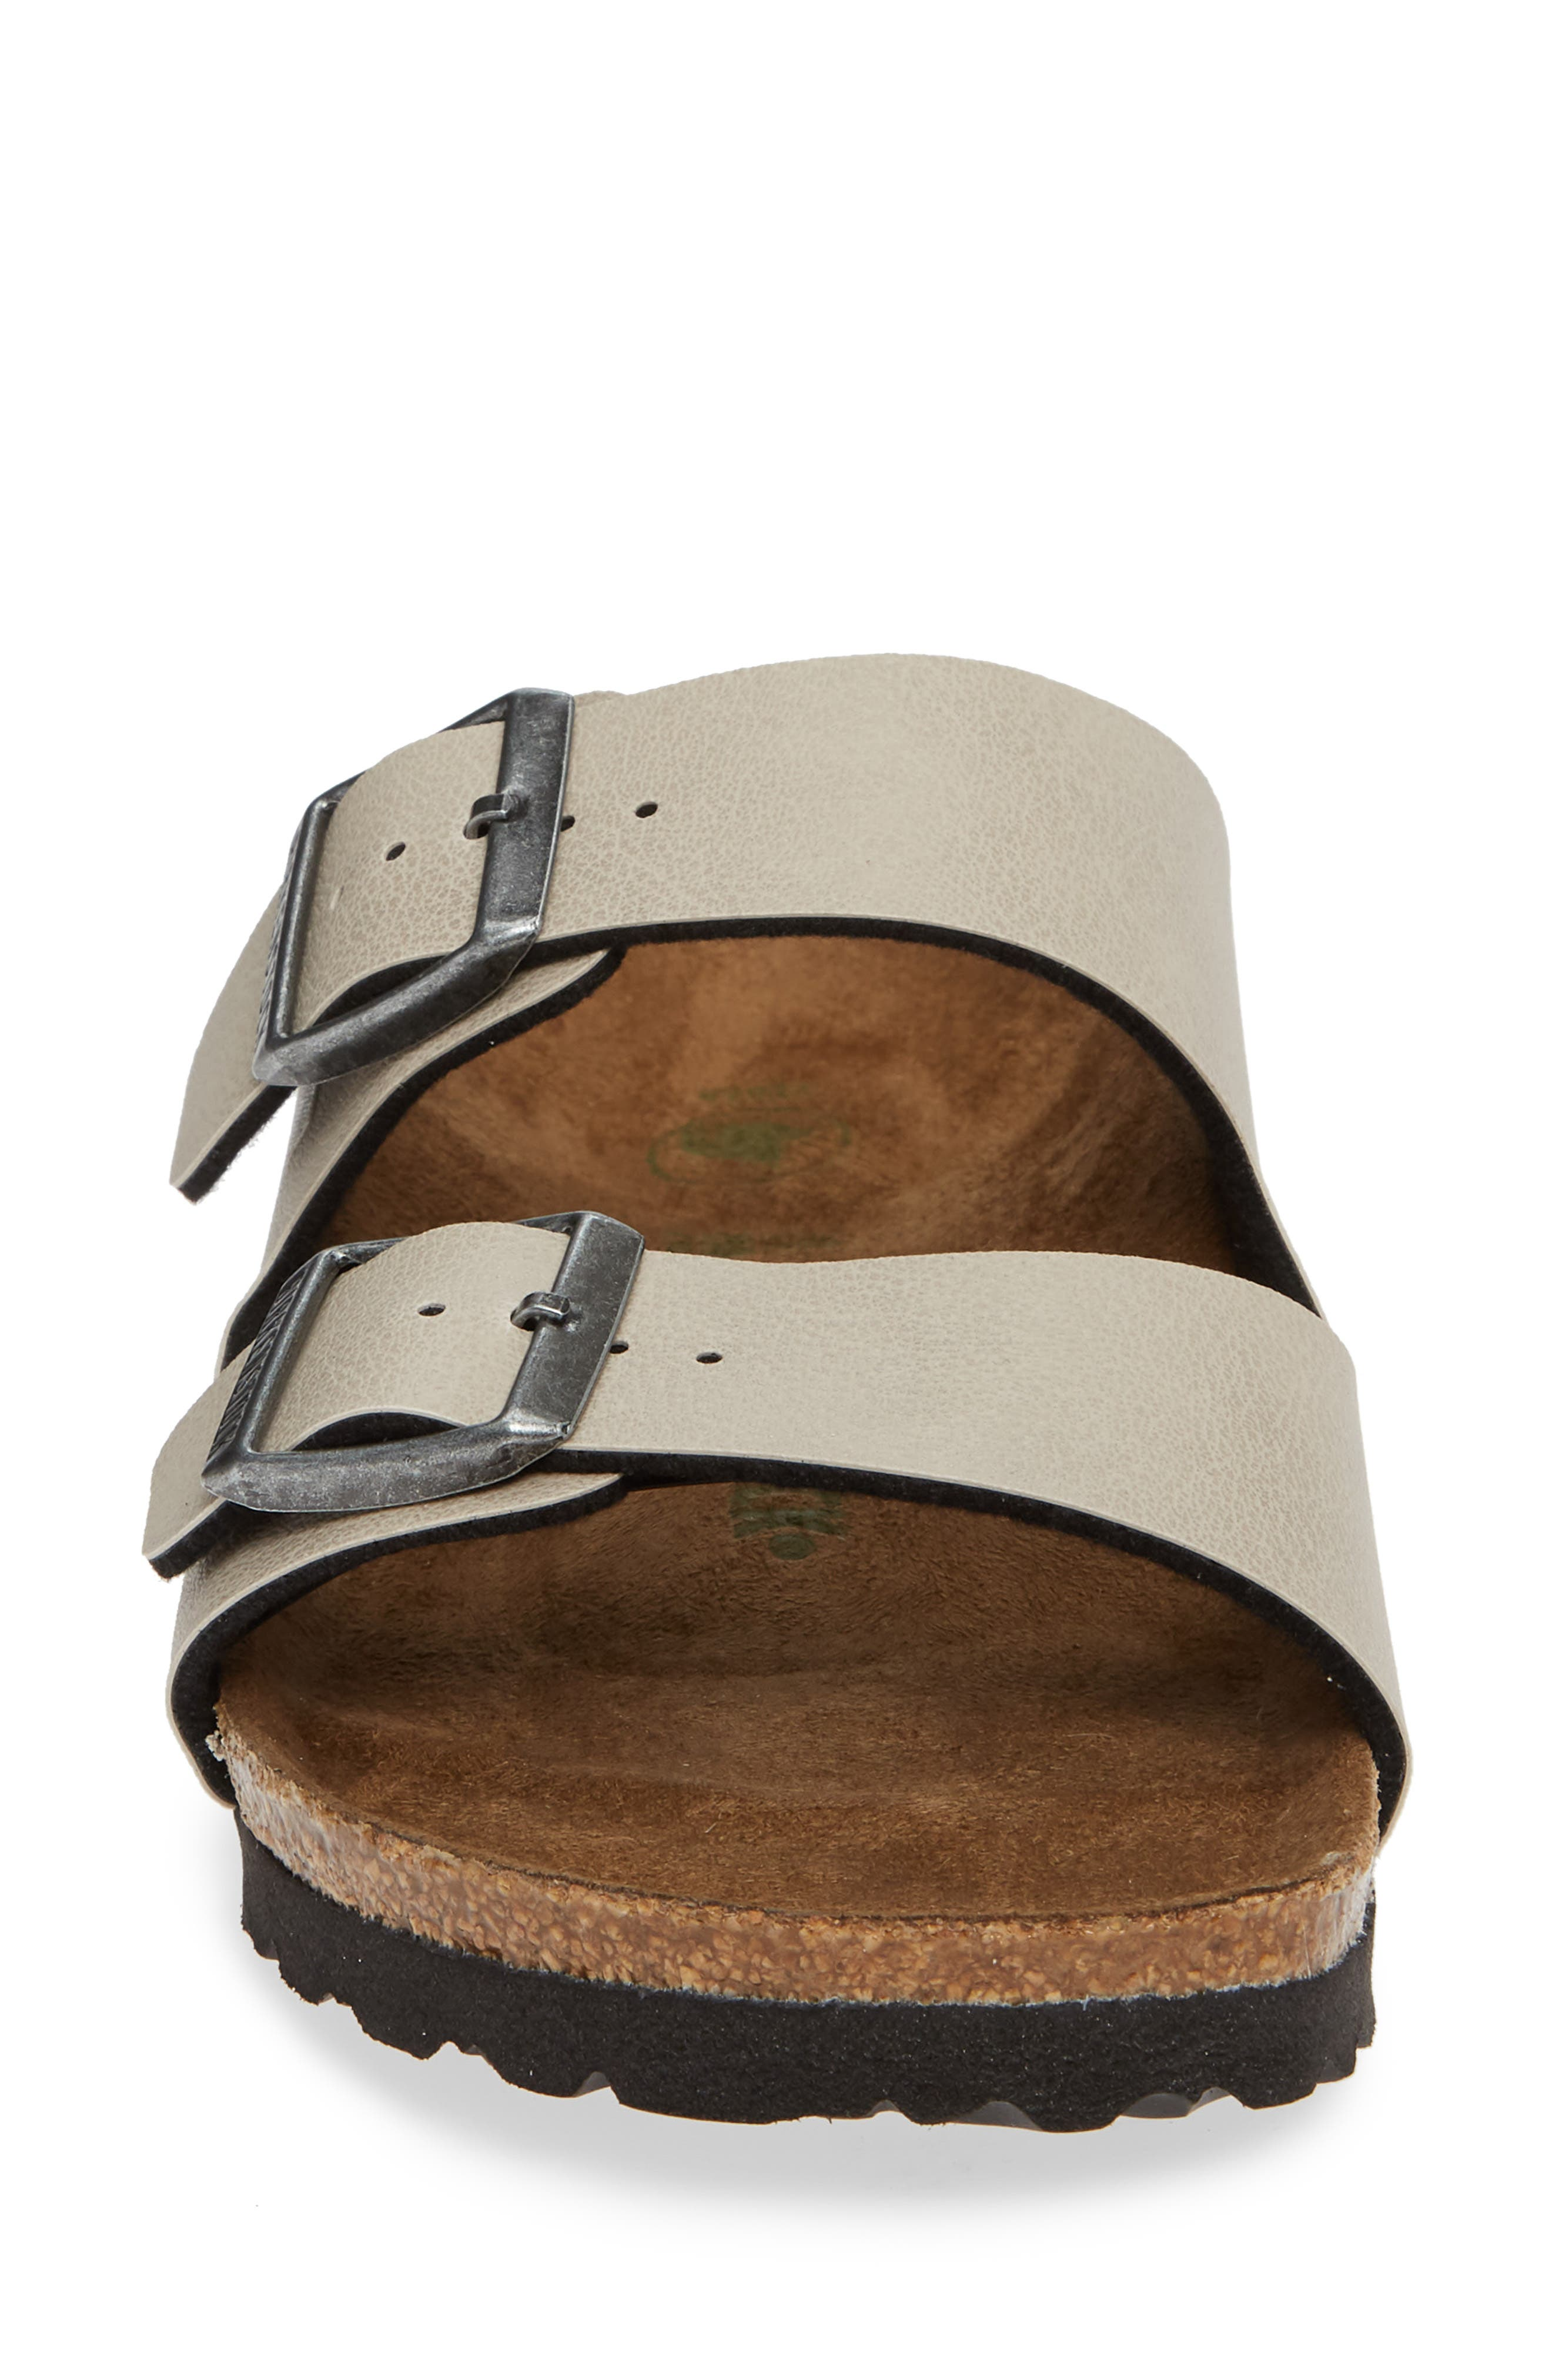 Arizona Birko-Flor<sup>™</sup> Slide Sandal,                             Alternate thumbnail 4, color,                             PULL UP STONE FAUX LEATHER